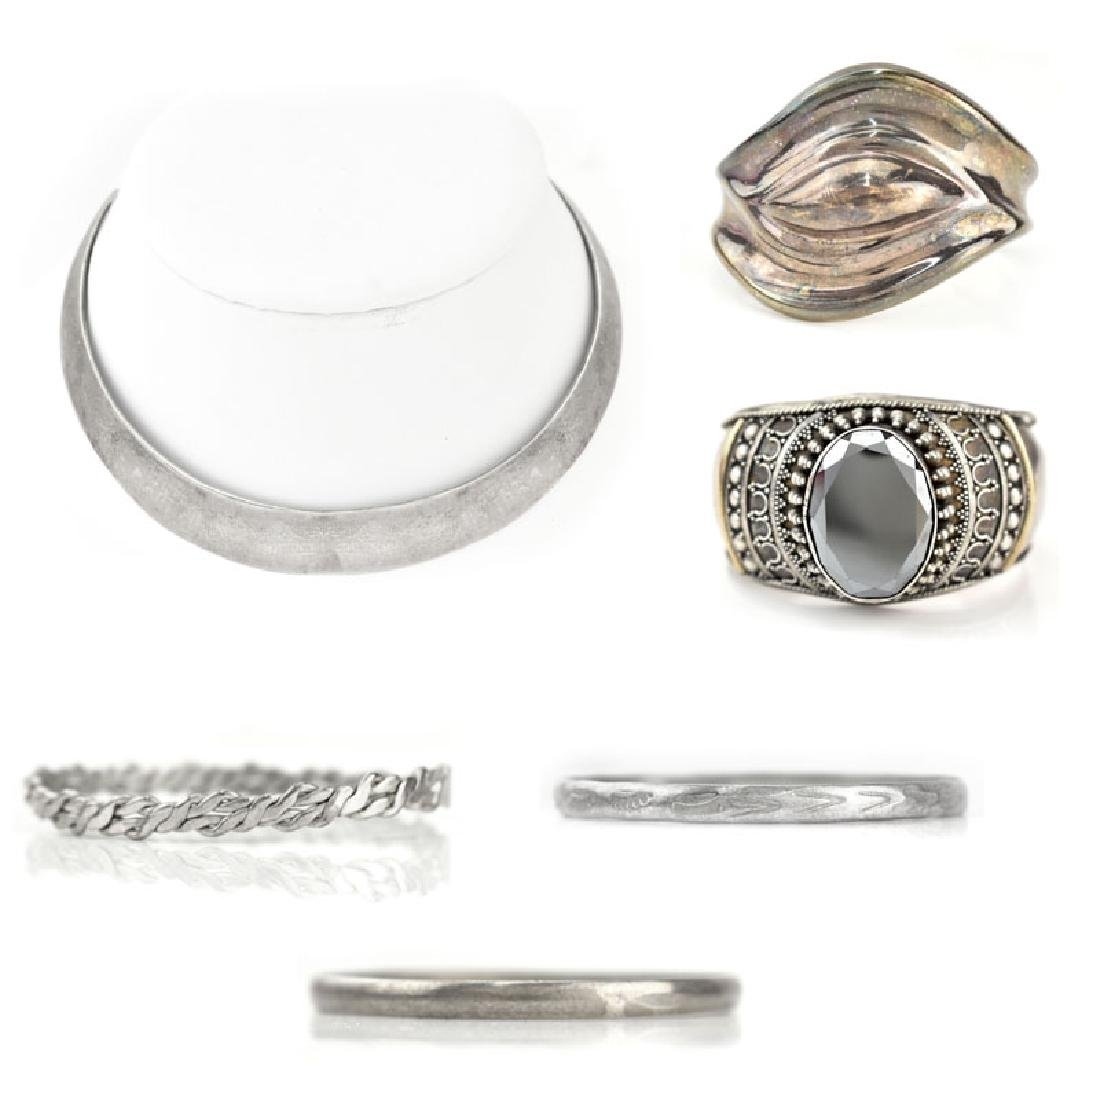 Six (6) Pieces Vintage Sterling Silver Jewelry